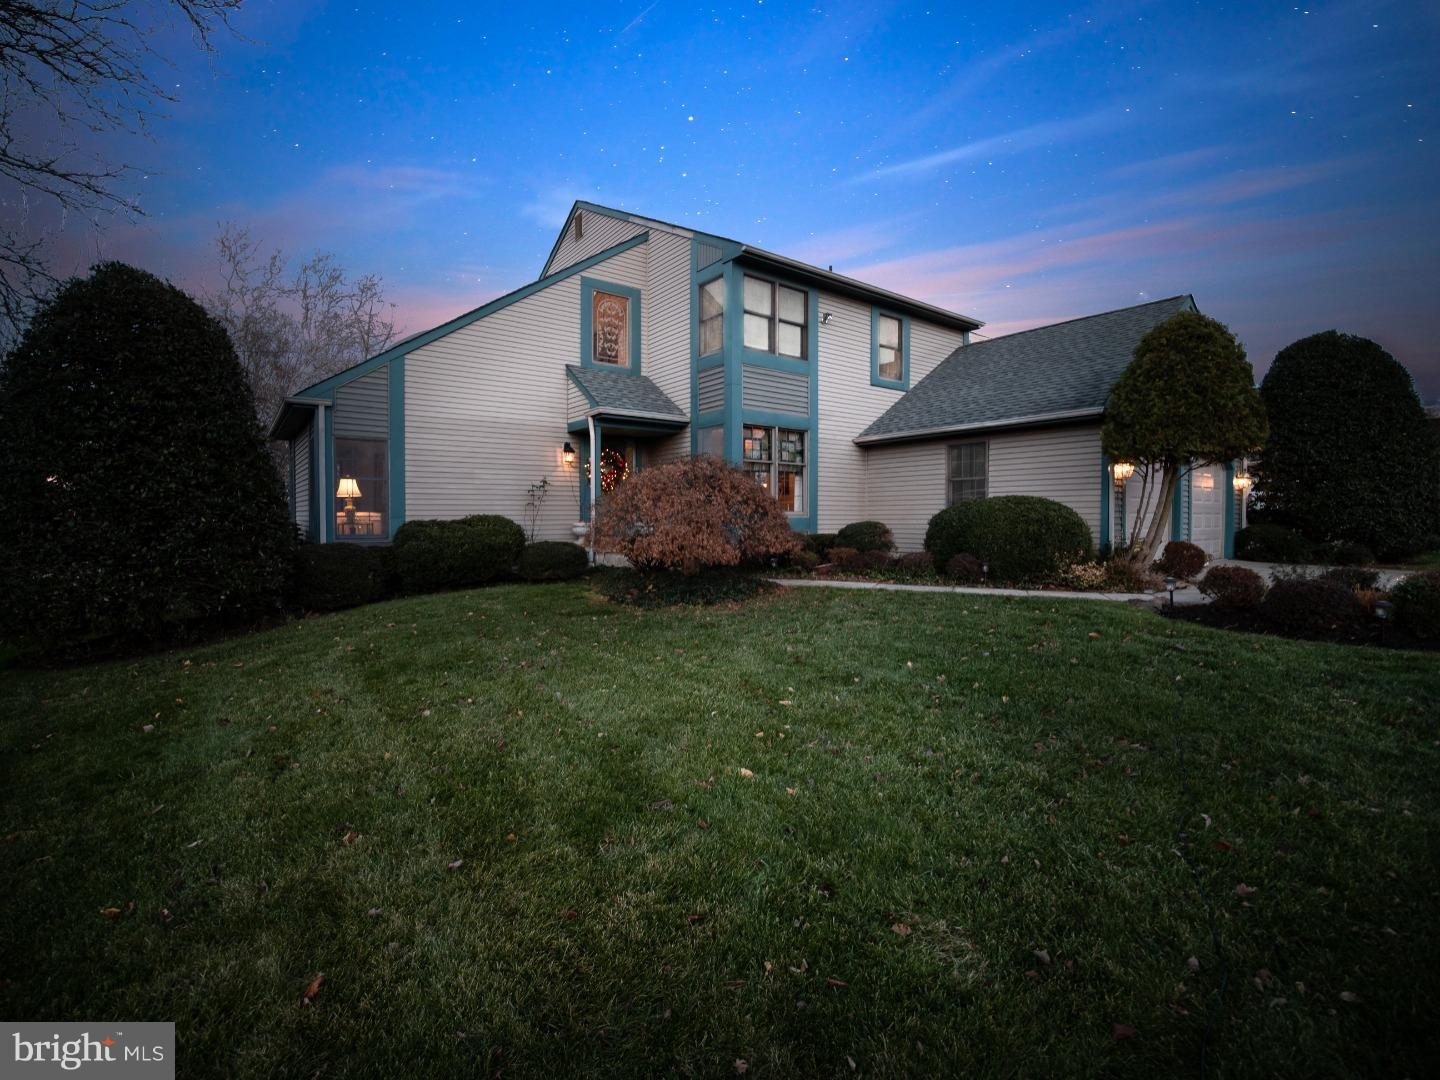 Single Family Home for Sale at 2 BEDFORD TER West Deptford, New Jersey 08051 United States